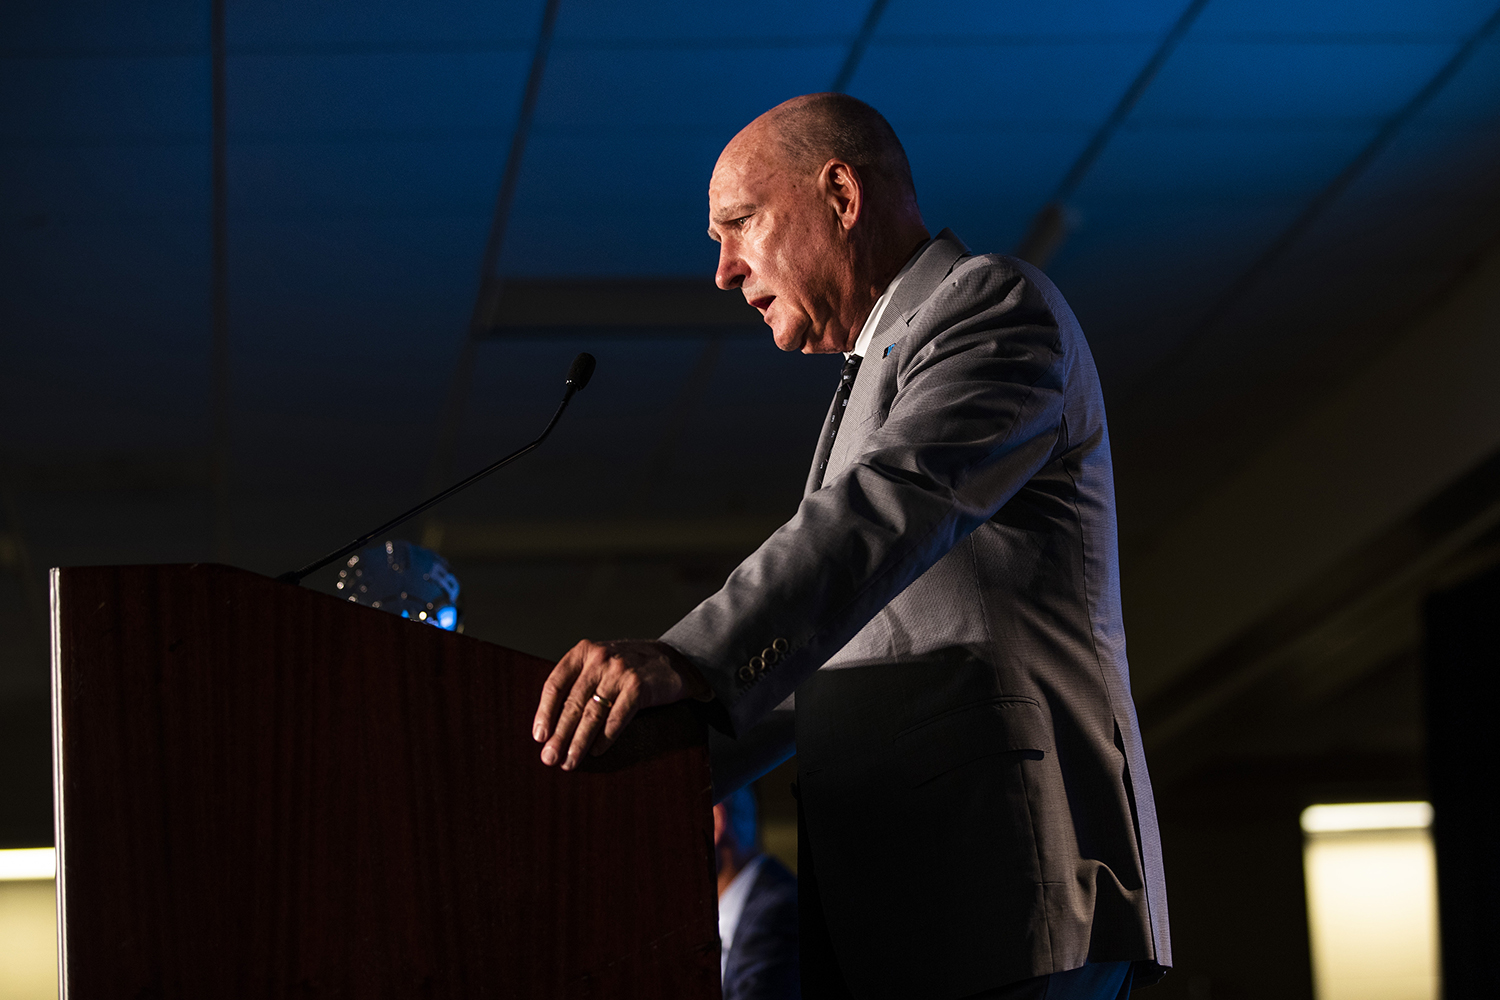 Big Ten Commissioner, Jim Delany, speaks during the Big Ten Football Media Day in Chicago, Ill., on Thursday, July 18, 2019.